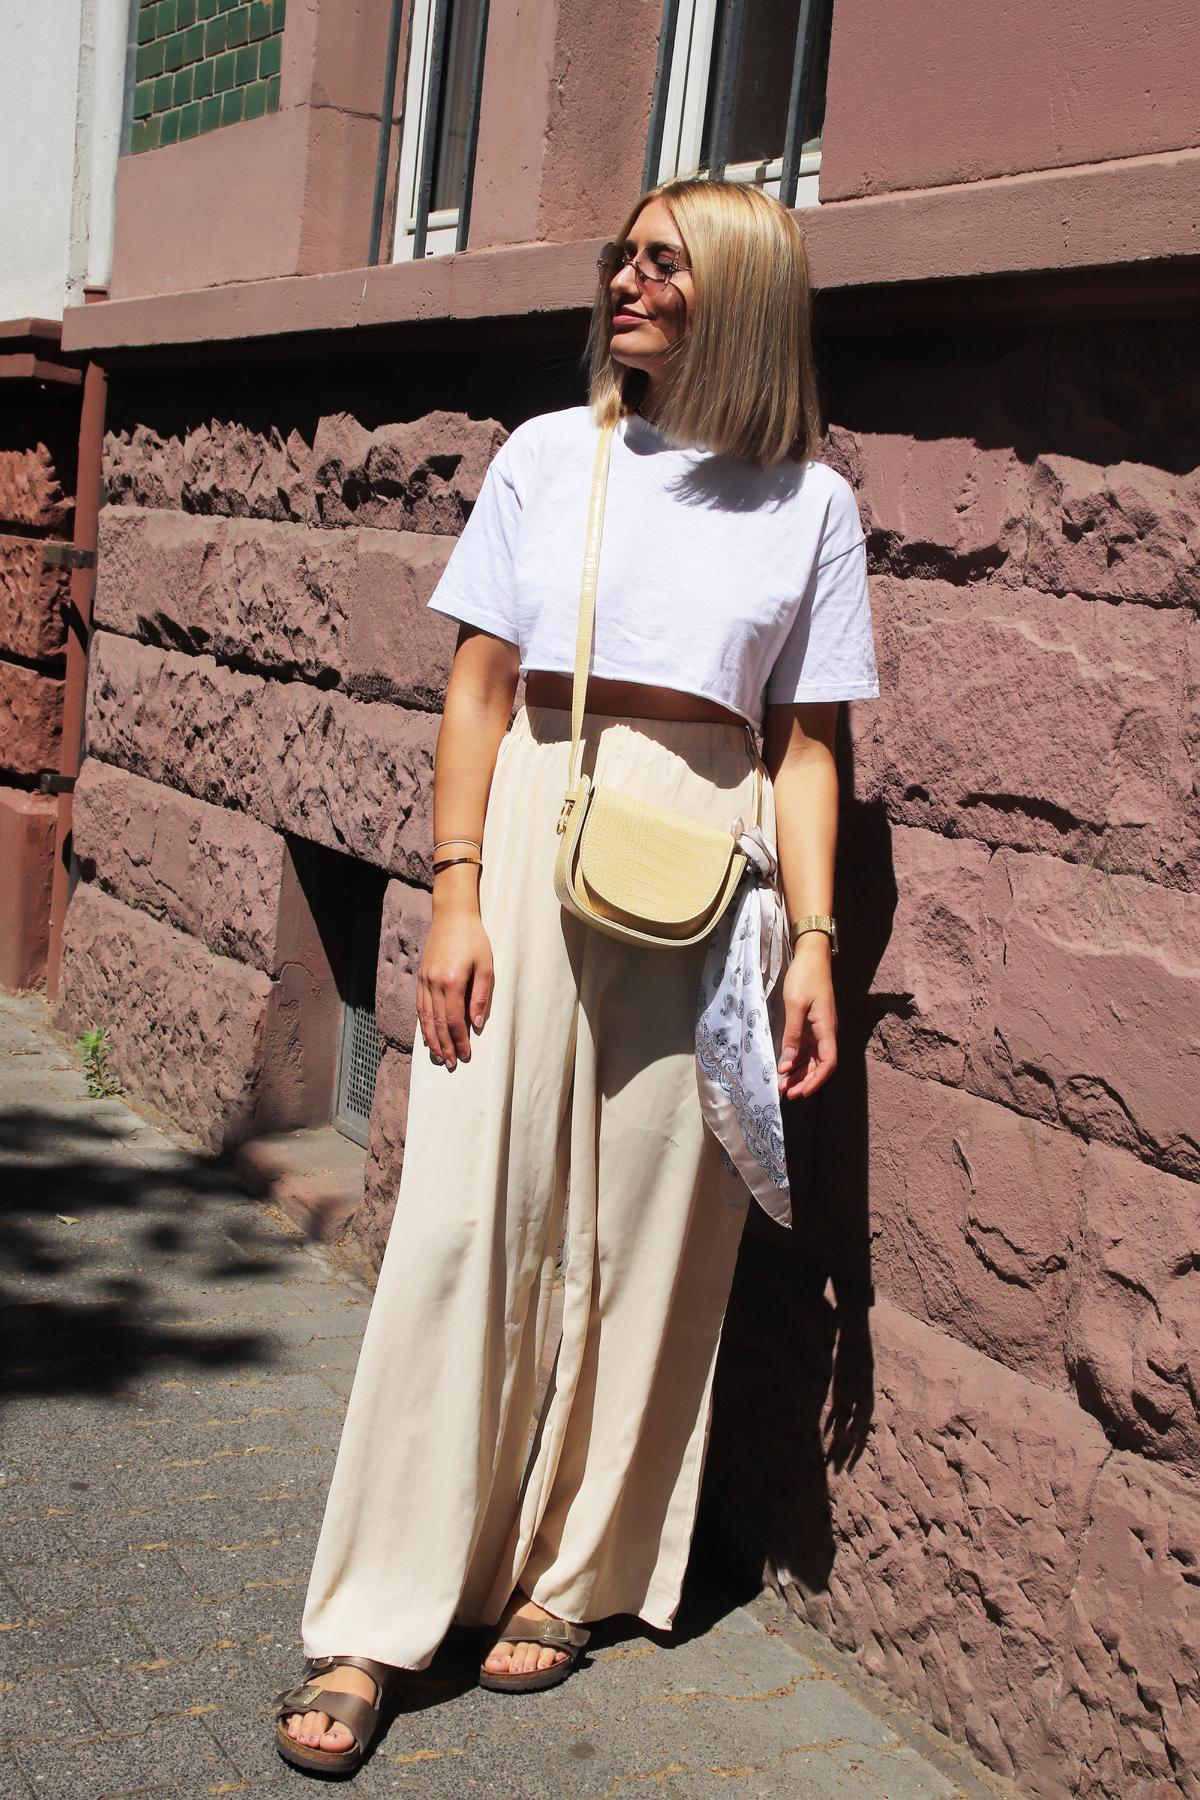 Sonnige Aussichten in der City mit  trendy cropped T-Shirt